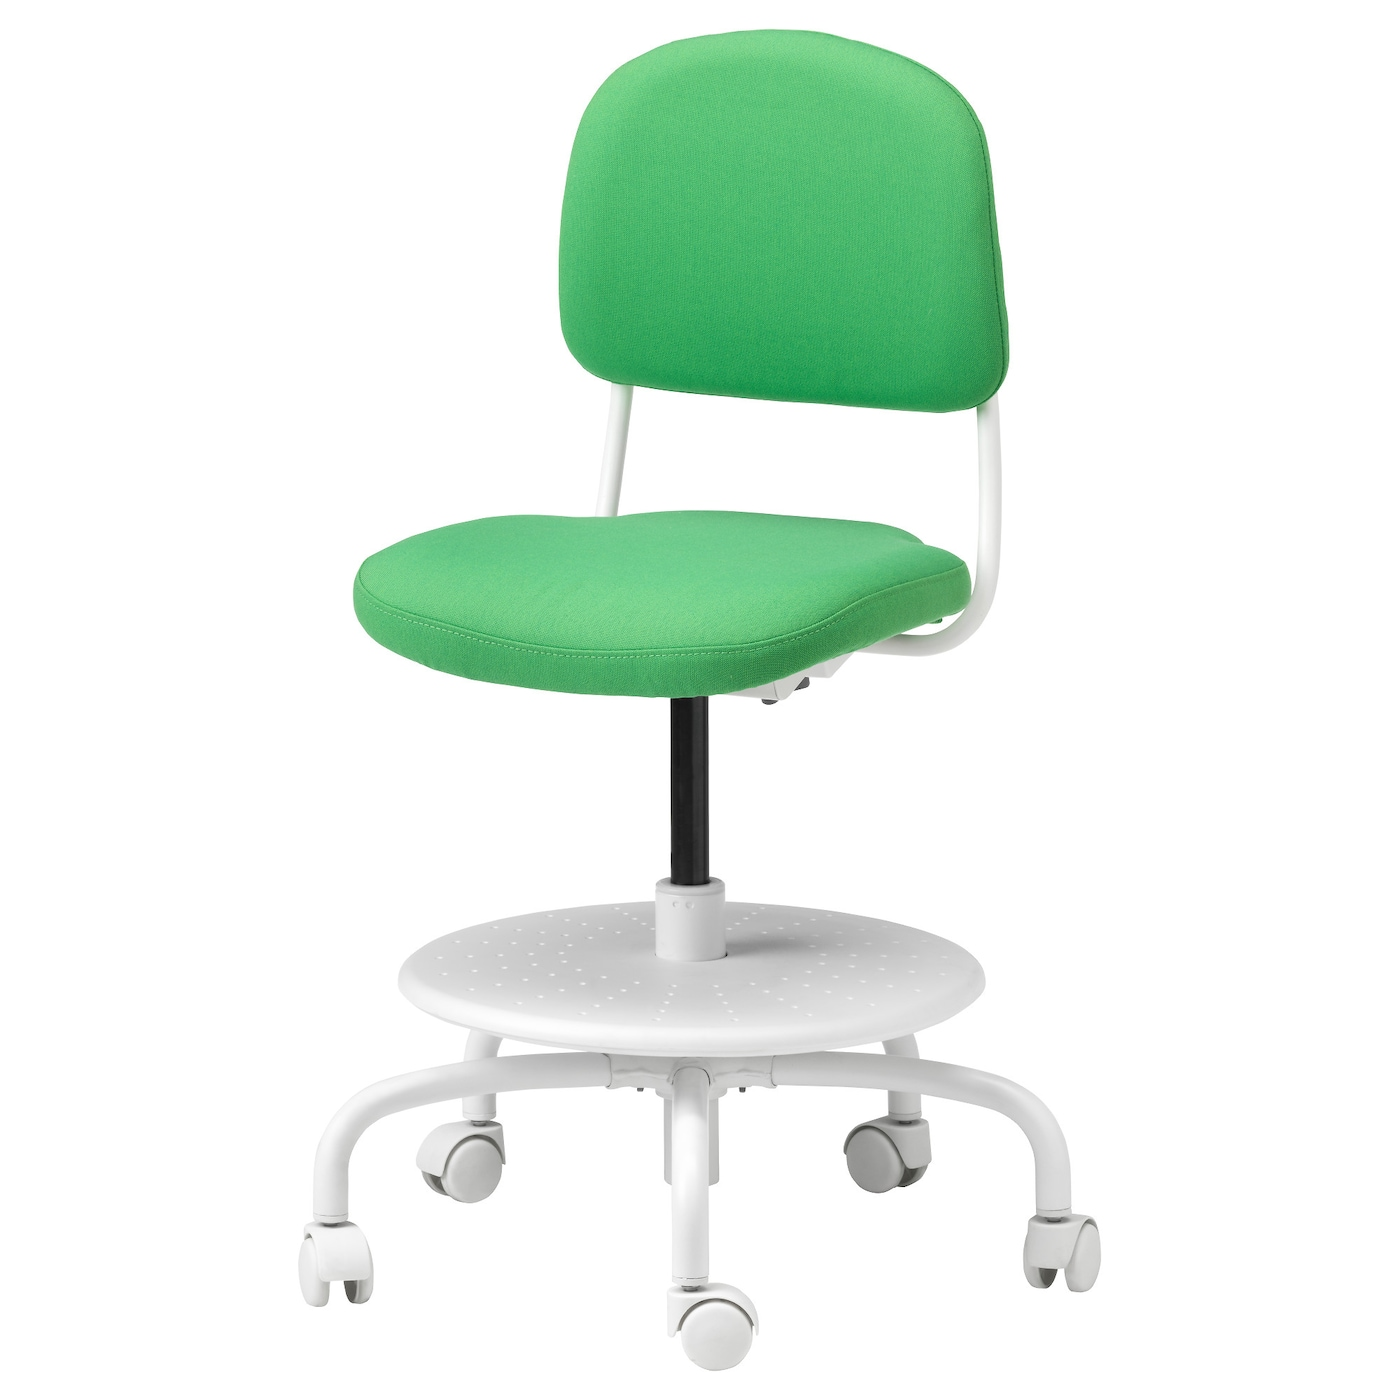 Vimund Children 39 S Desk Chair Vissle Bright Green Ikea